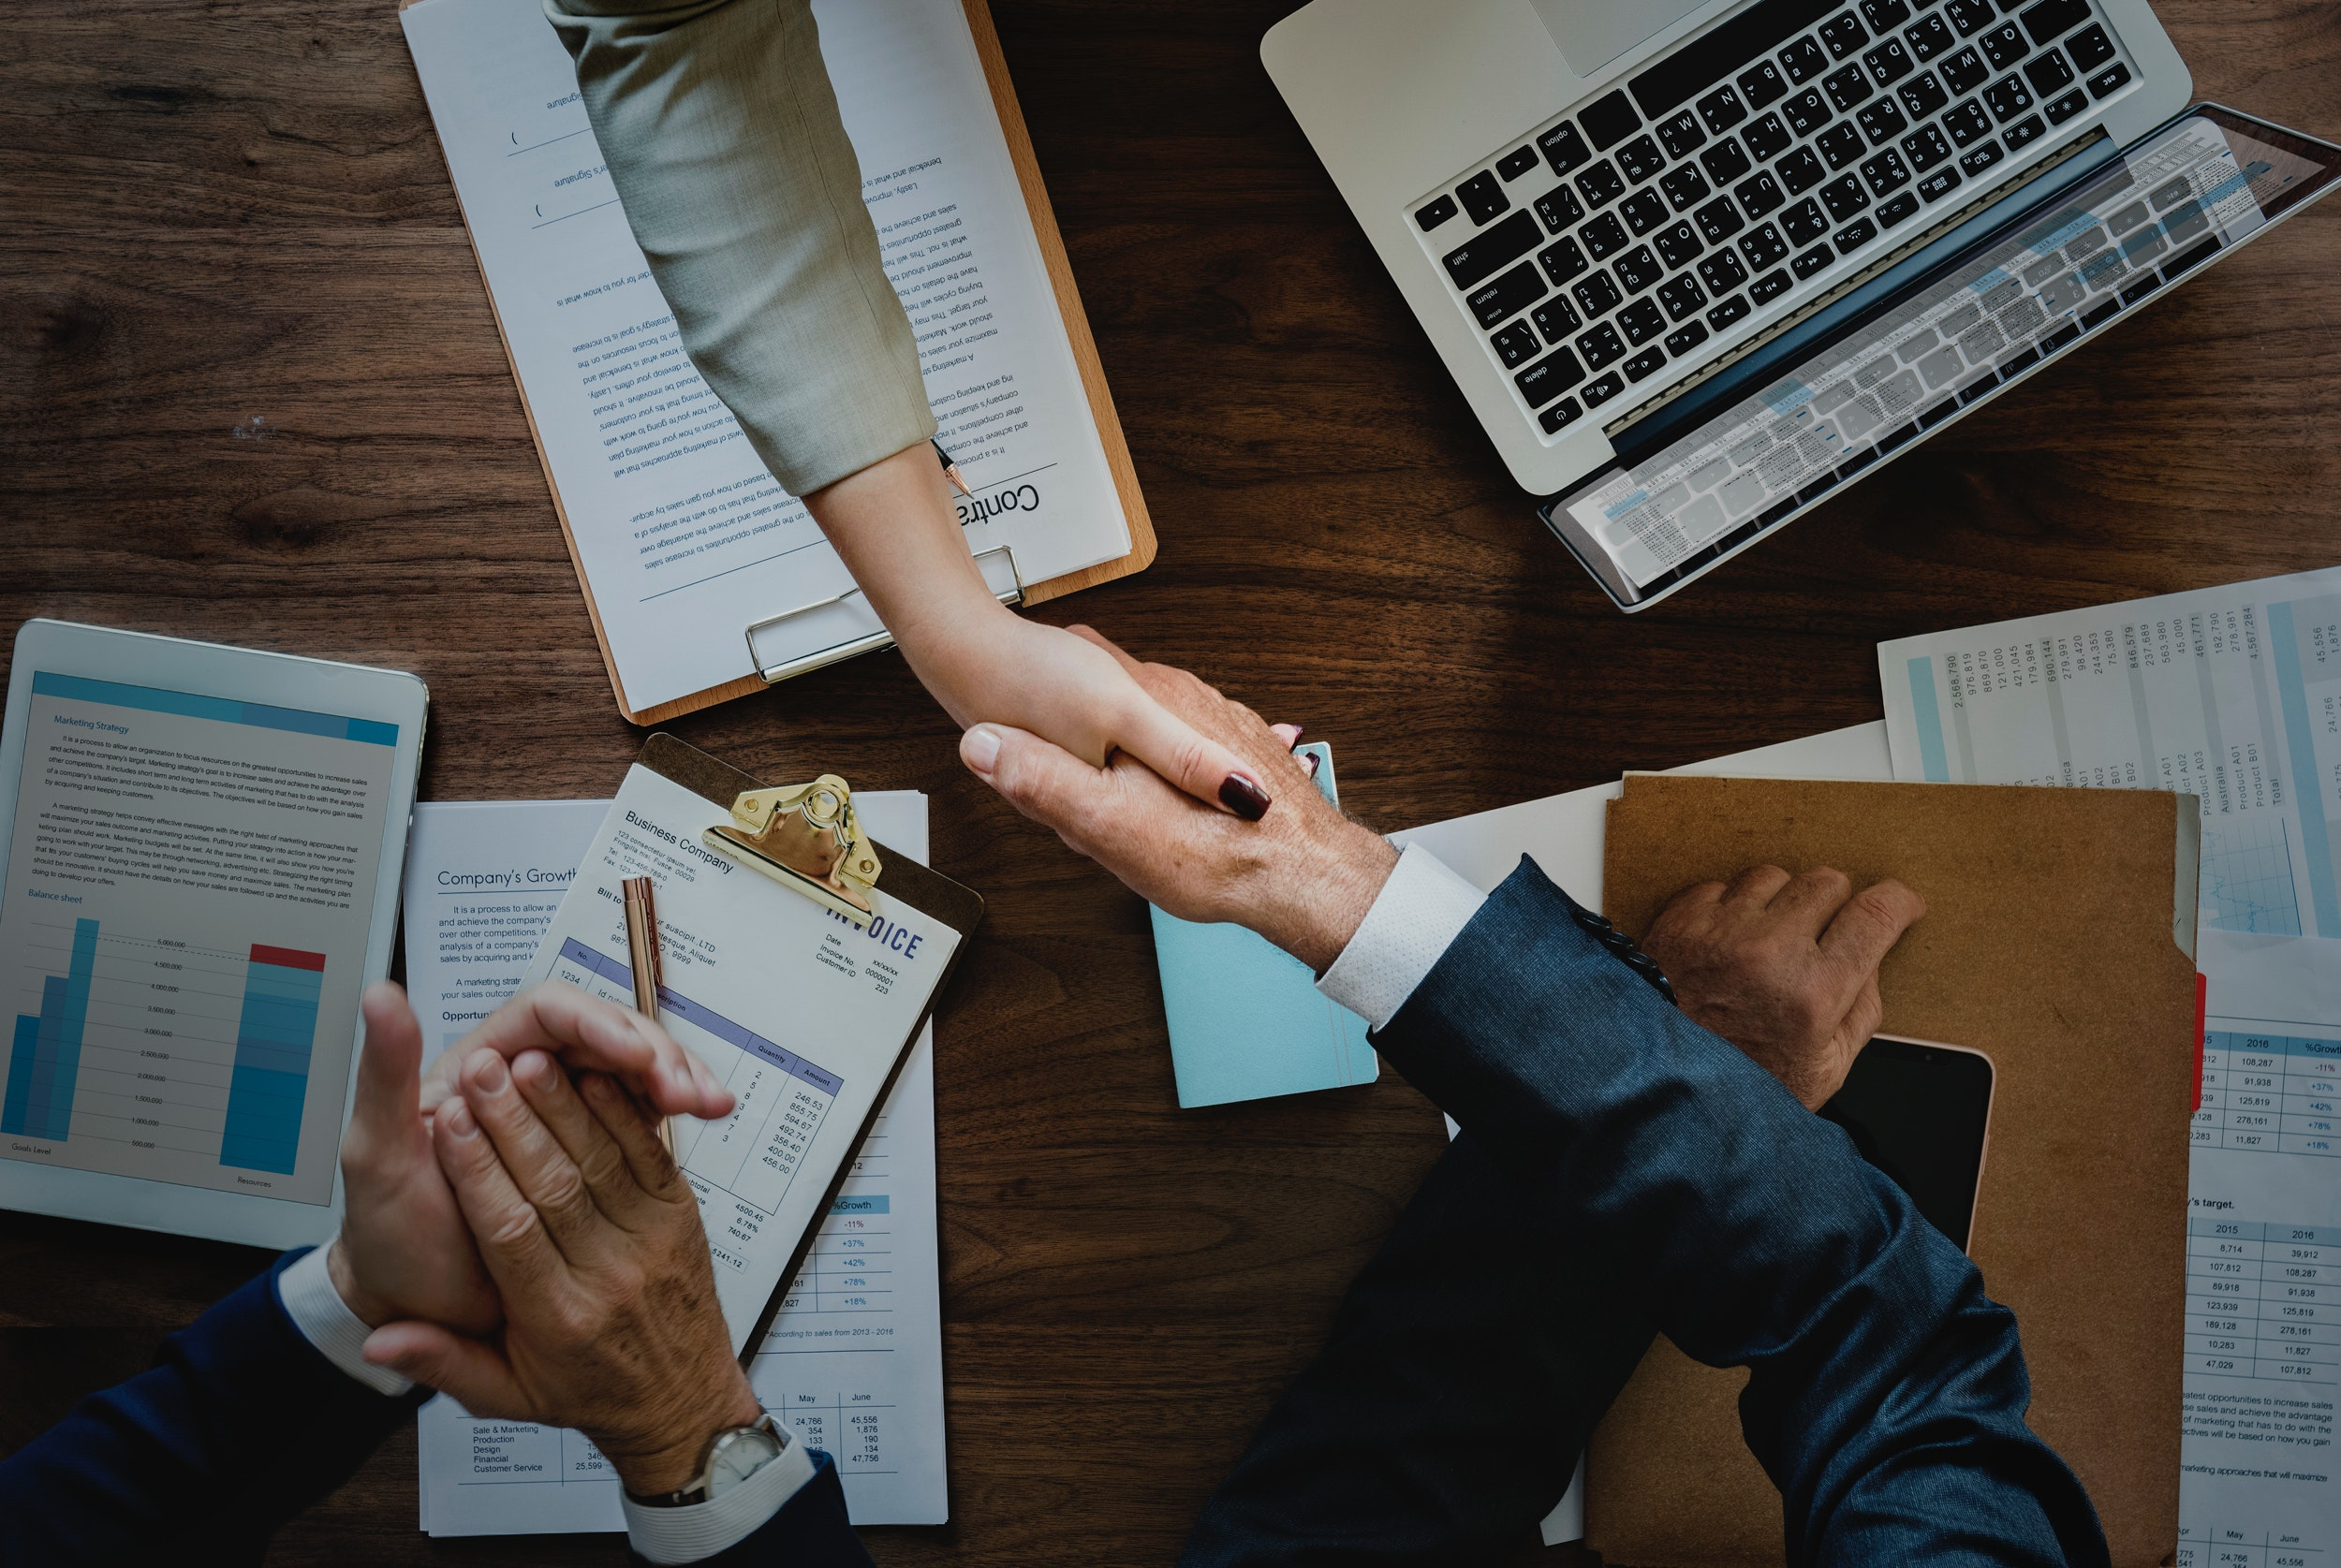 Follow these five tips to make your SBIR/STTR proposal stand out from the competition so you can fund your technologies.